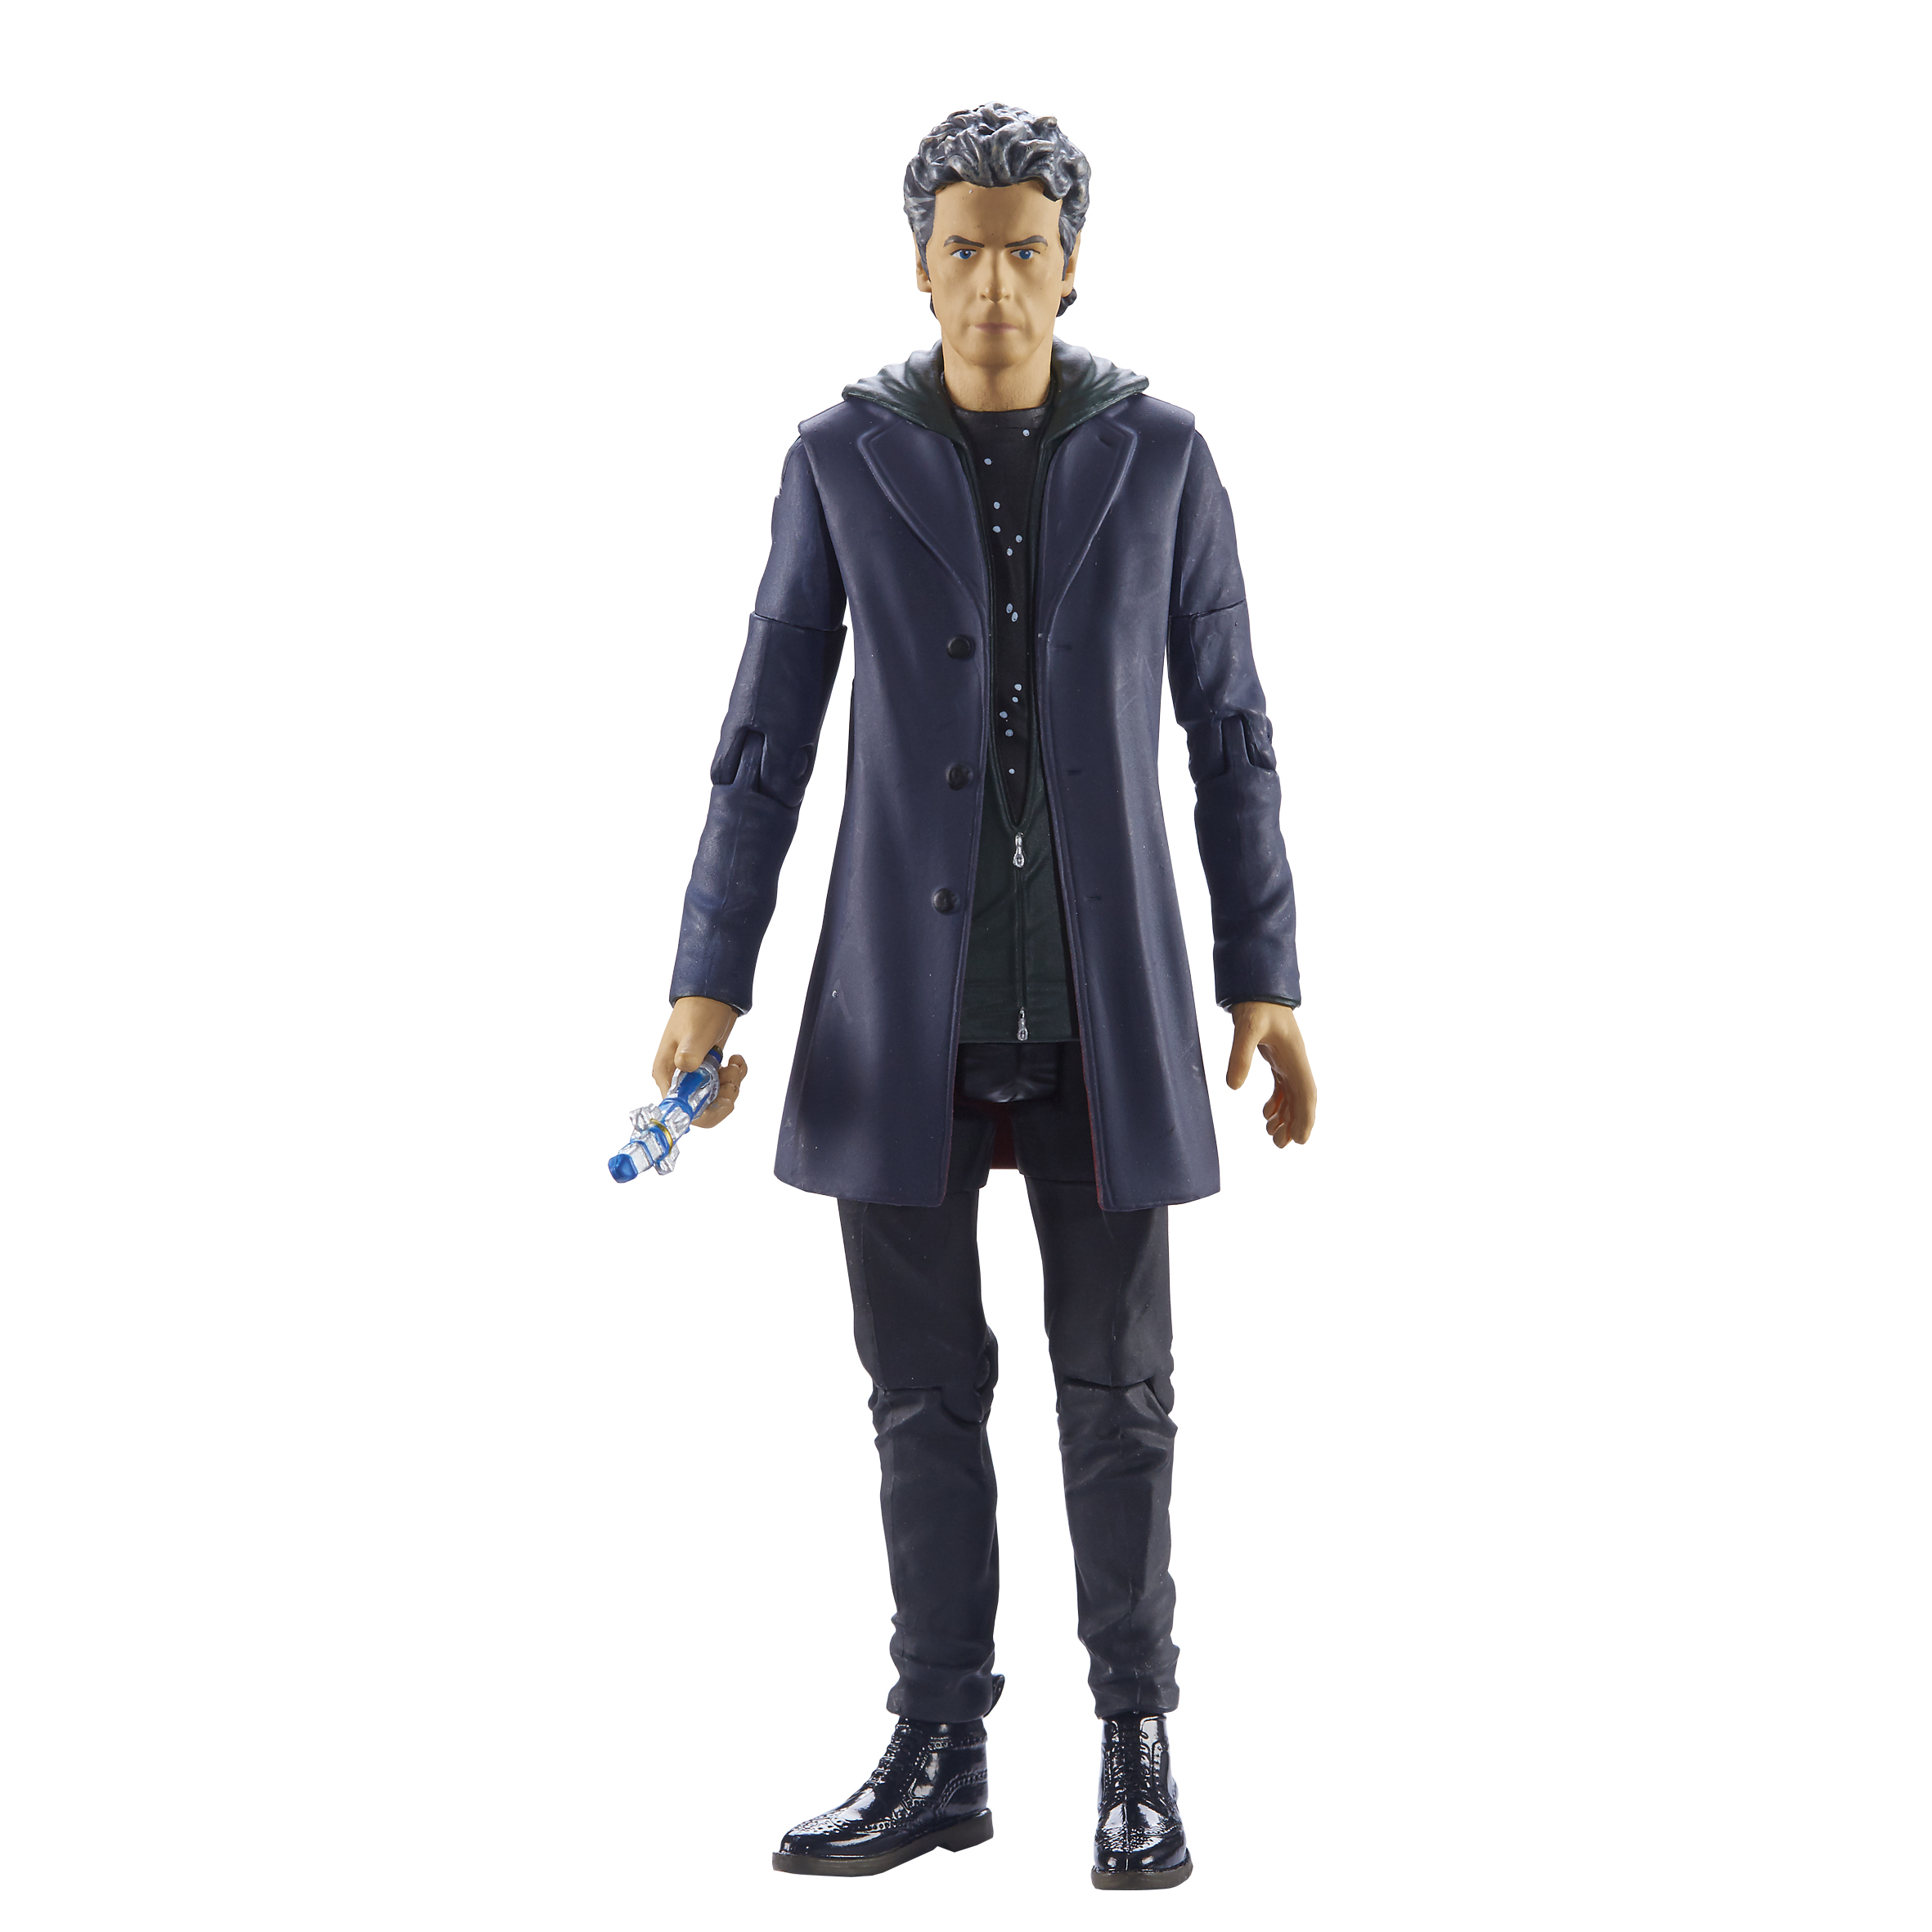 Twelth Doctor Grey Hoodie (Credit: Character Options)